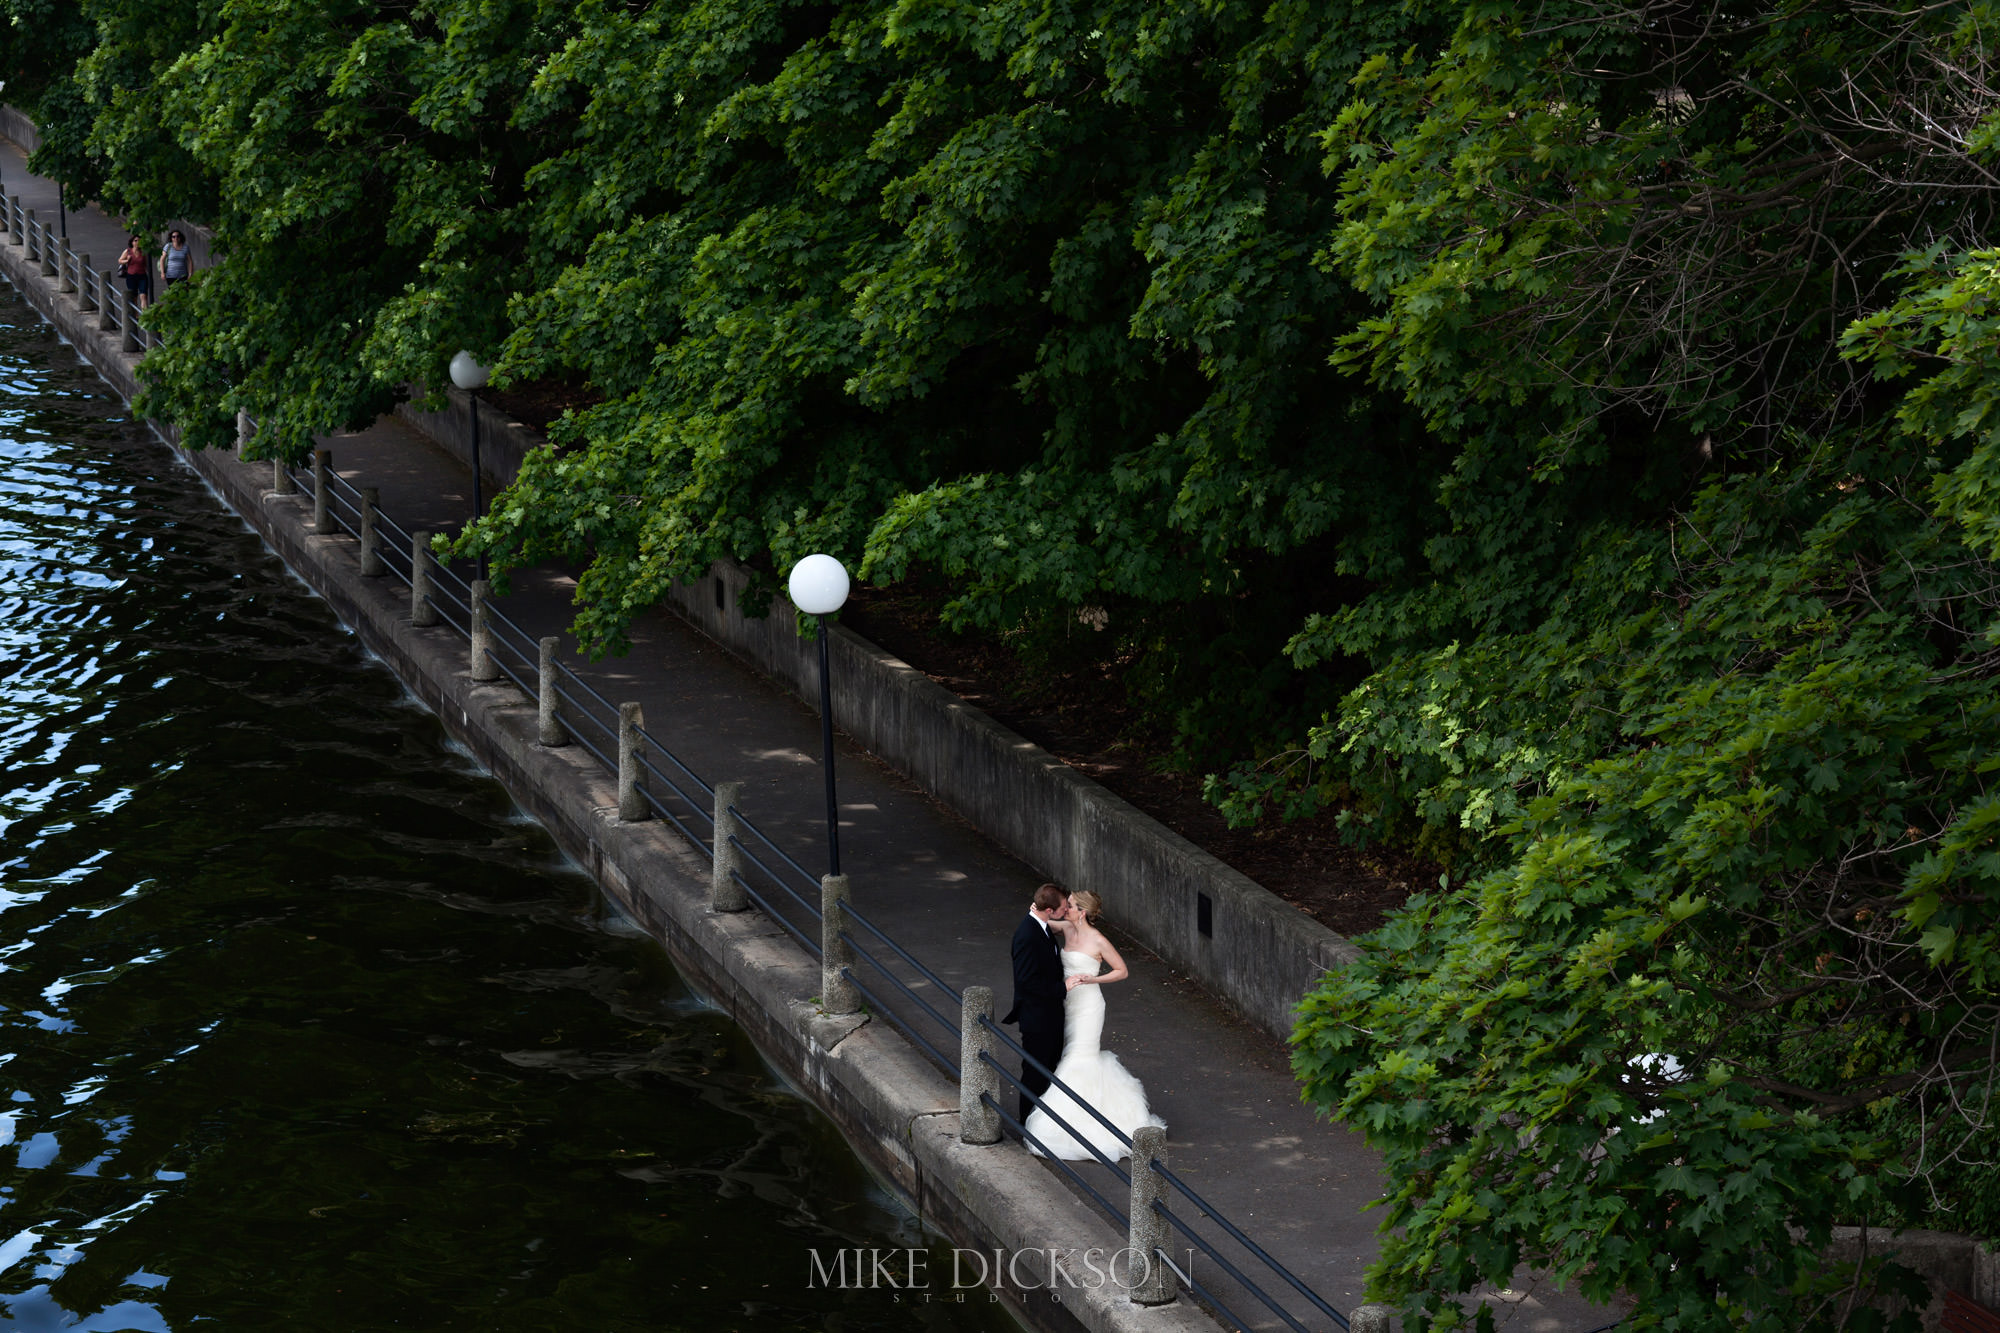 Byward Market, Magic, Ontario, Ottawa, Photography, Rideau Canal, Summer, Time of Year, Wedding, © Mike Dickson